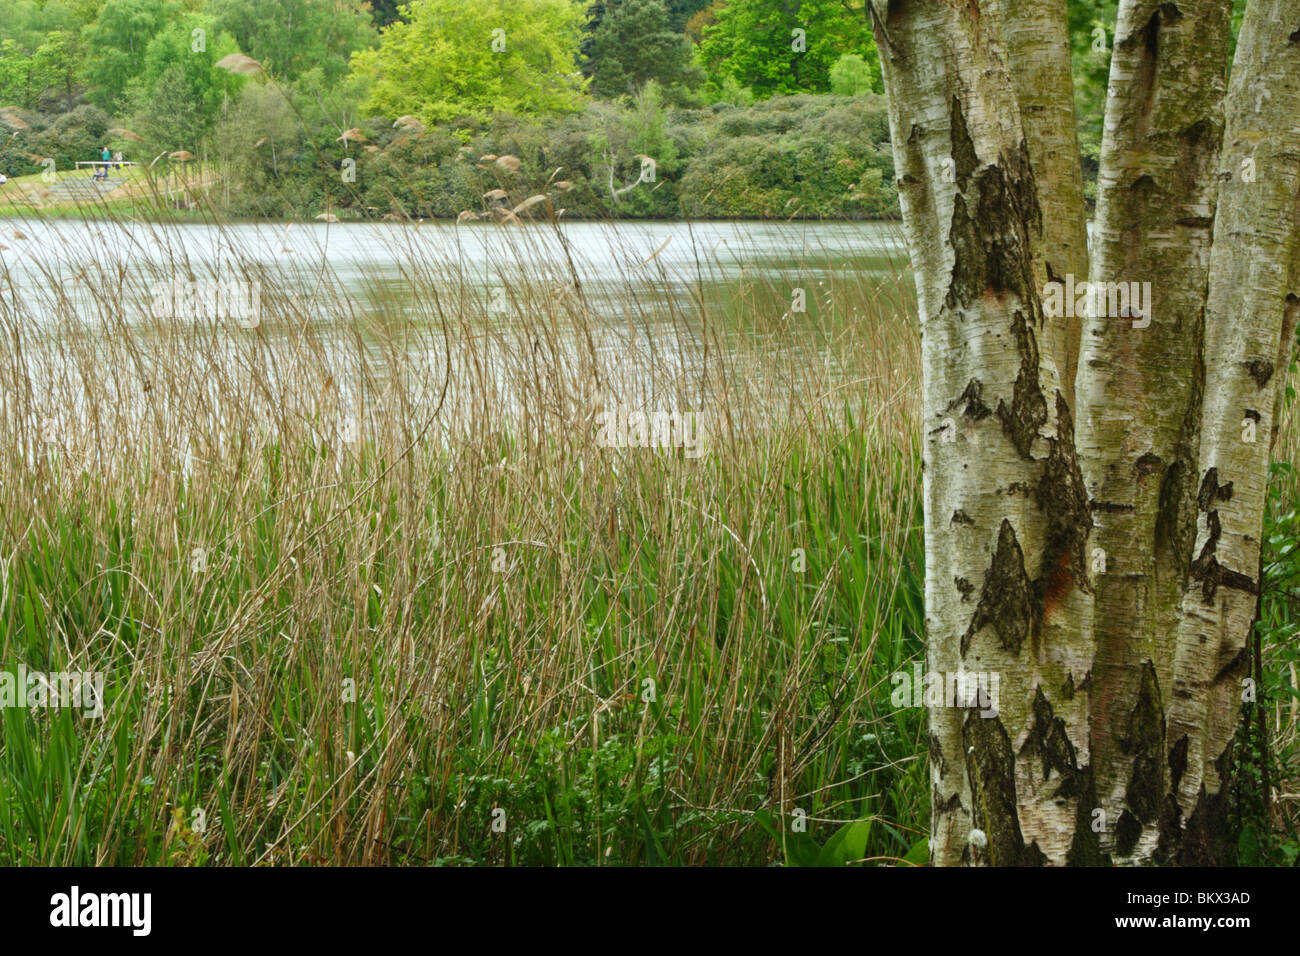 Birch trees on the banks of Virginia Water, The Royal Landscape, Windsor Great Park, Surrey, United Kingdom - Stock Image